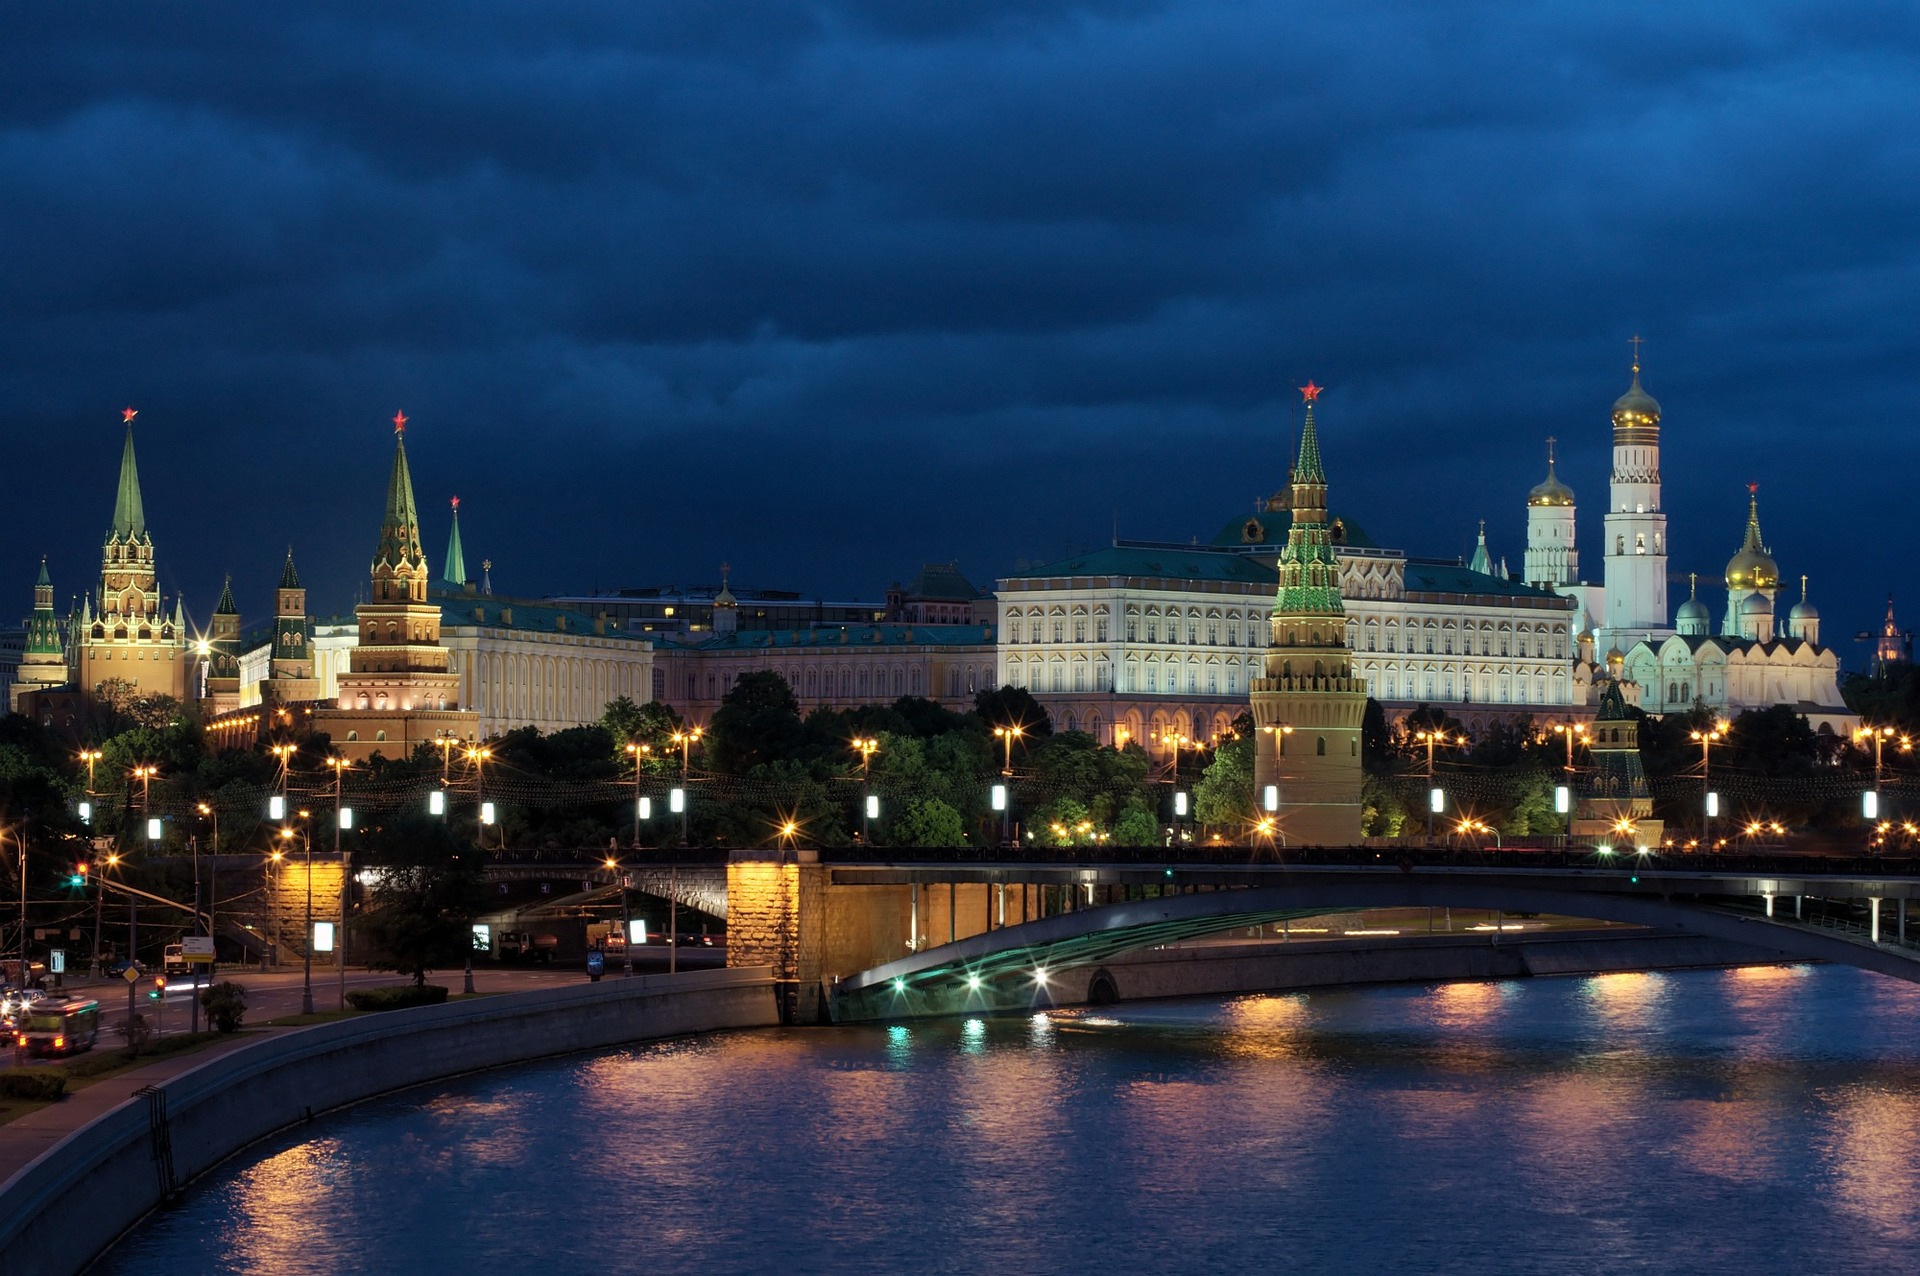 The Moscow Kremlin, Moscow, Russia at night